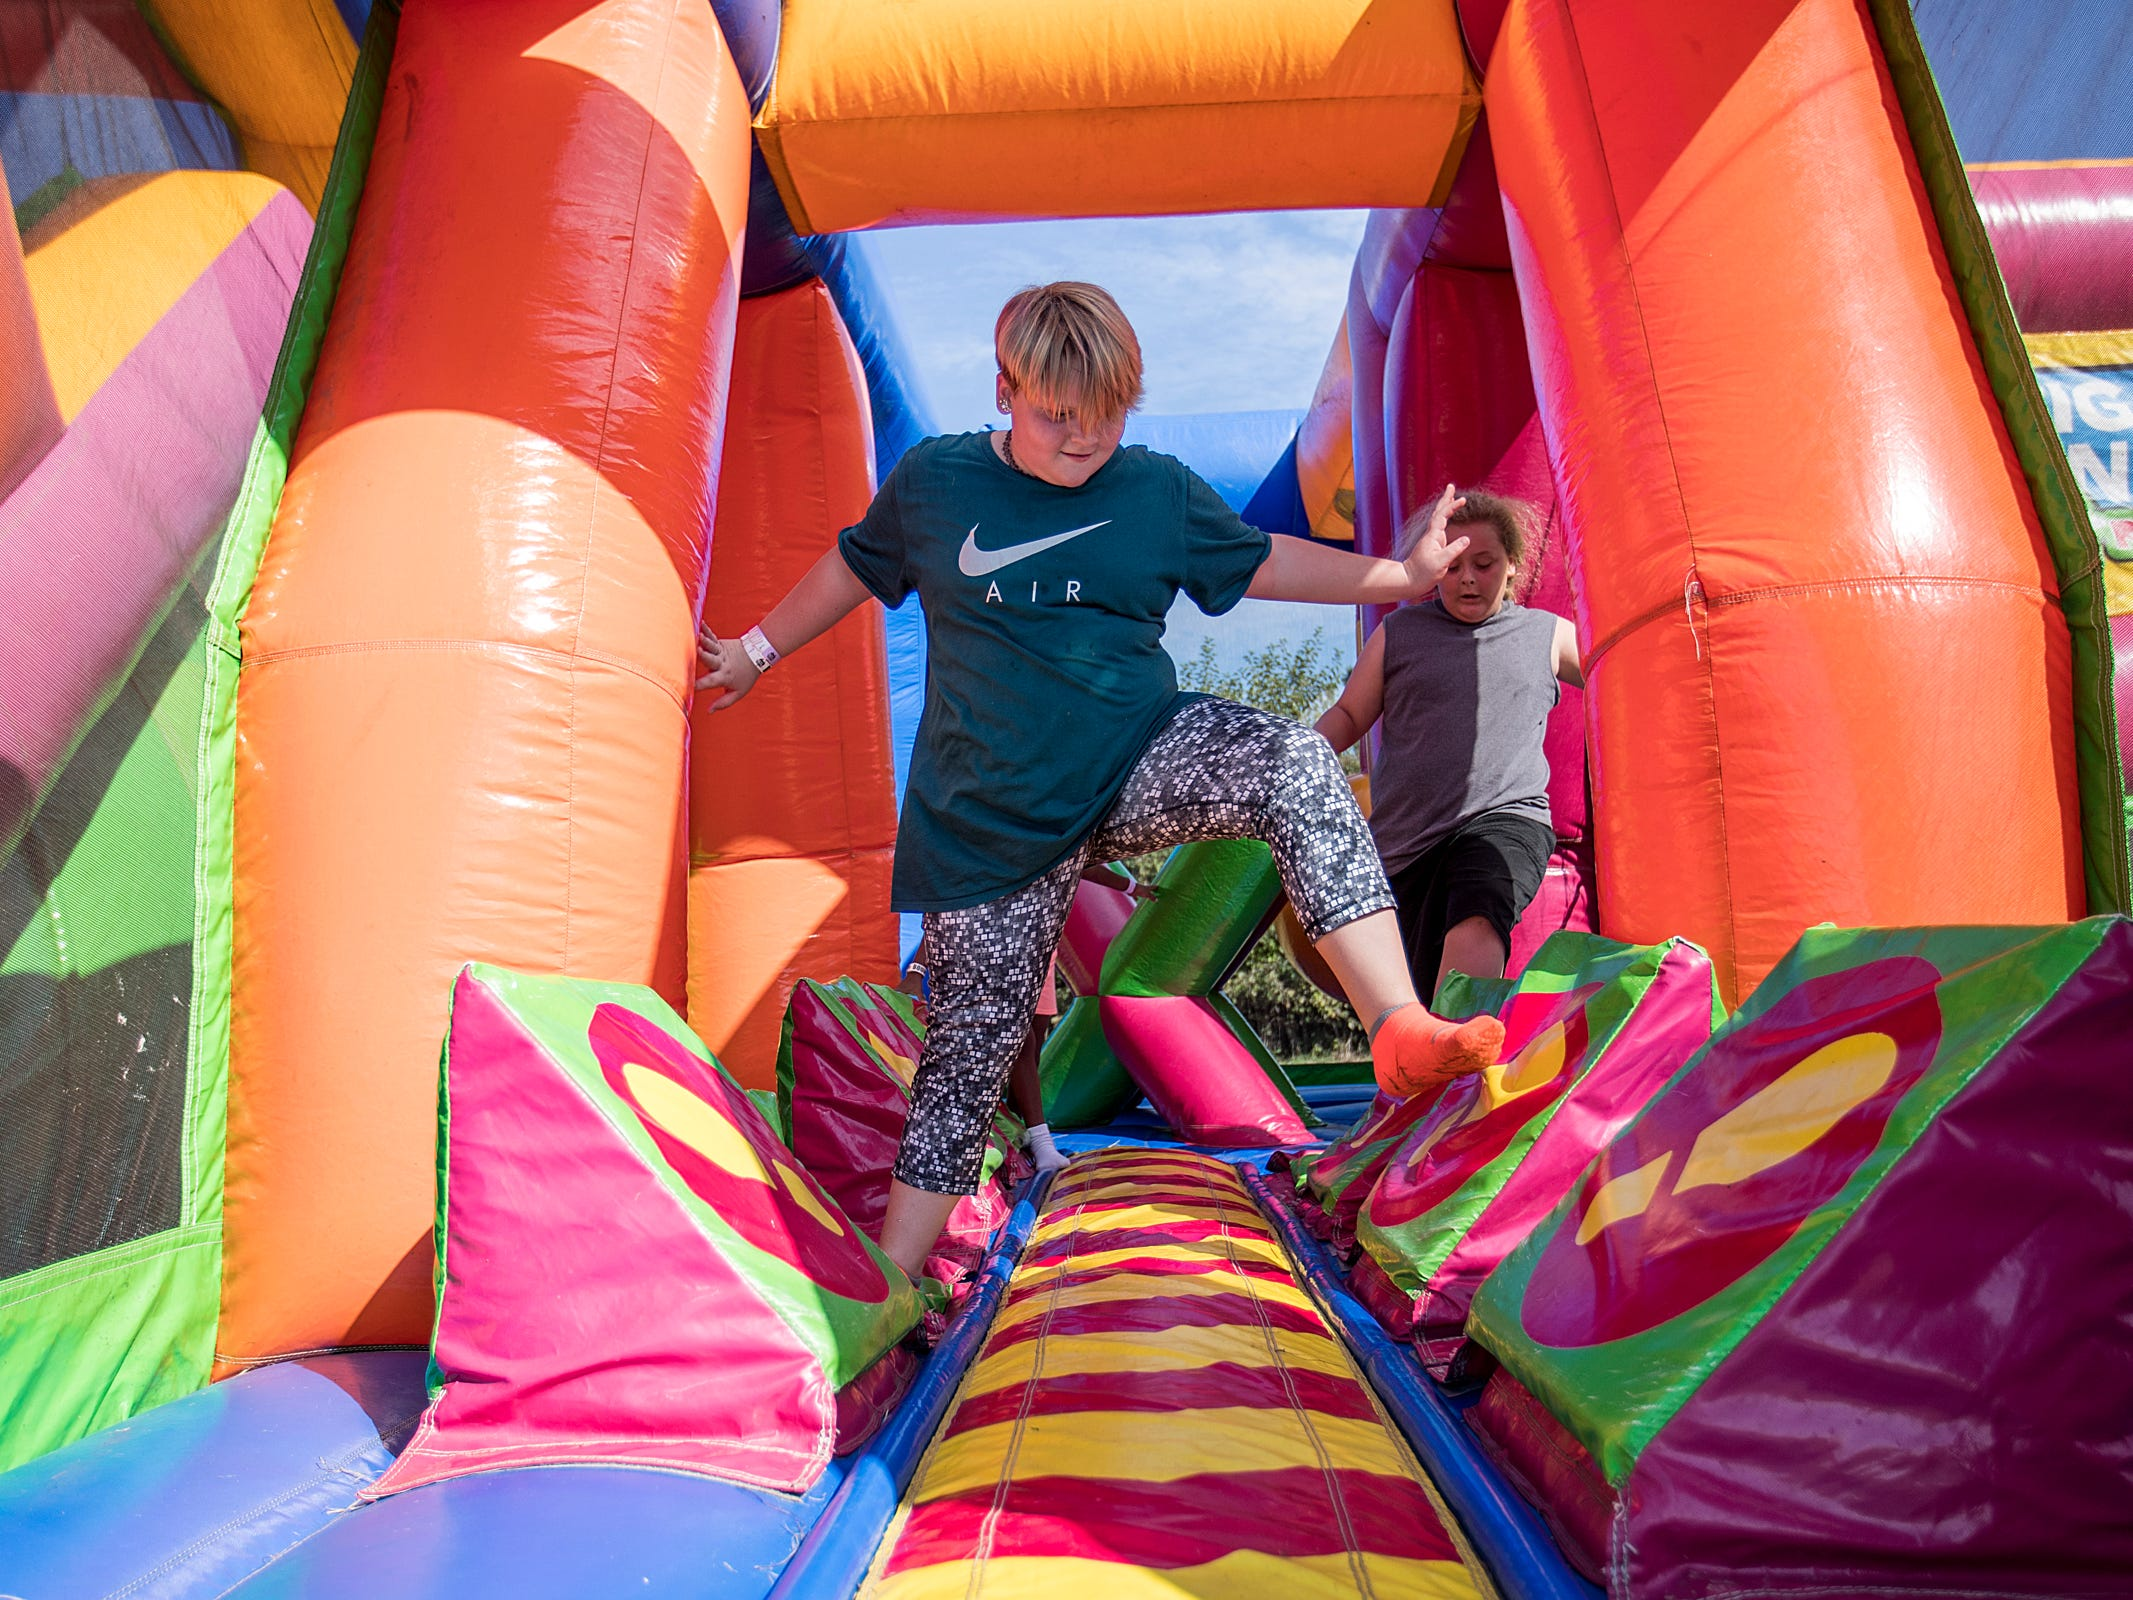 Lily Ent, 11, makes her way through an inflated obstacle course, part of the Big Bounce America attraction at Waterman's Family Farm in Indianapolis, Friday, Sept. 14, 2018. The world's largest bounce house covers 10,000 square feet and will be in Indy though September 16.